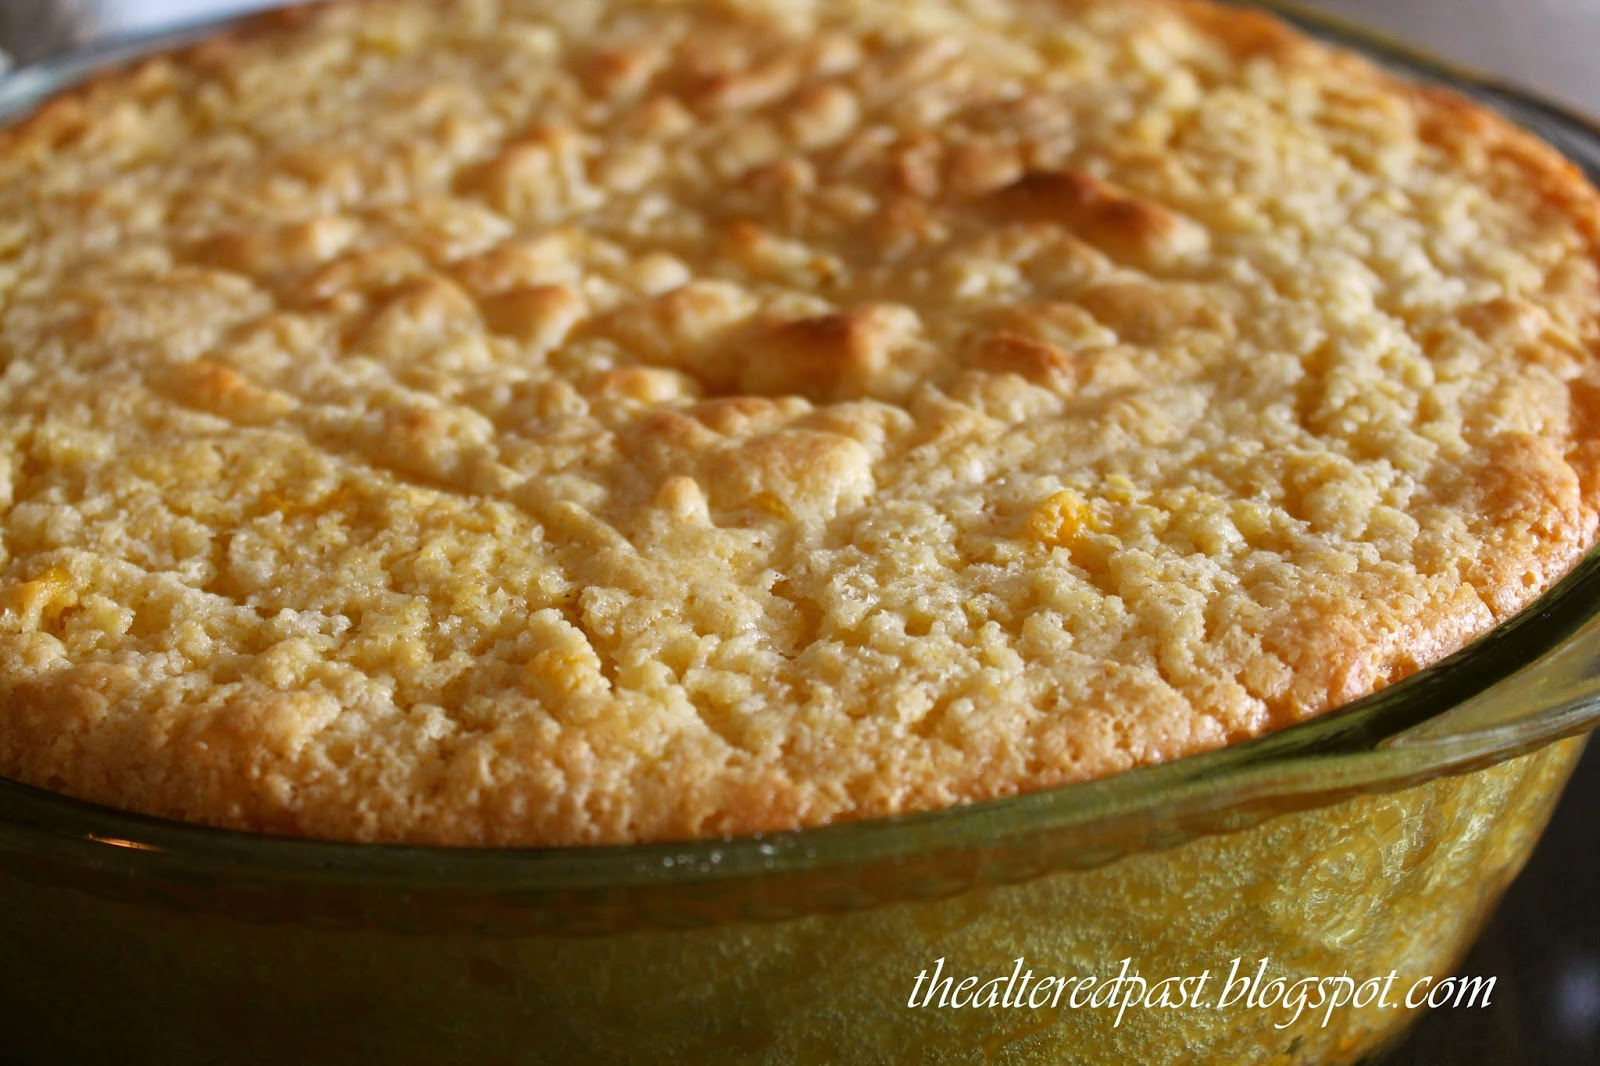 the best corn pudding recipe, the altered past